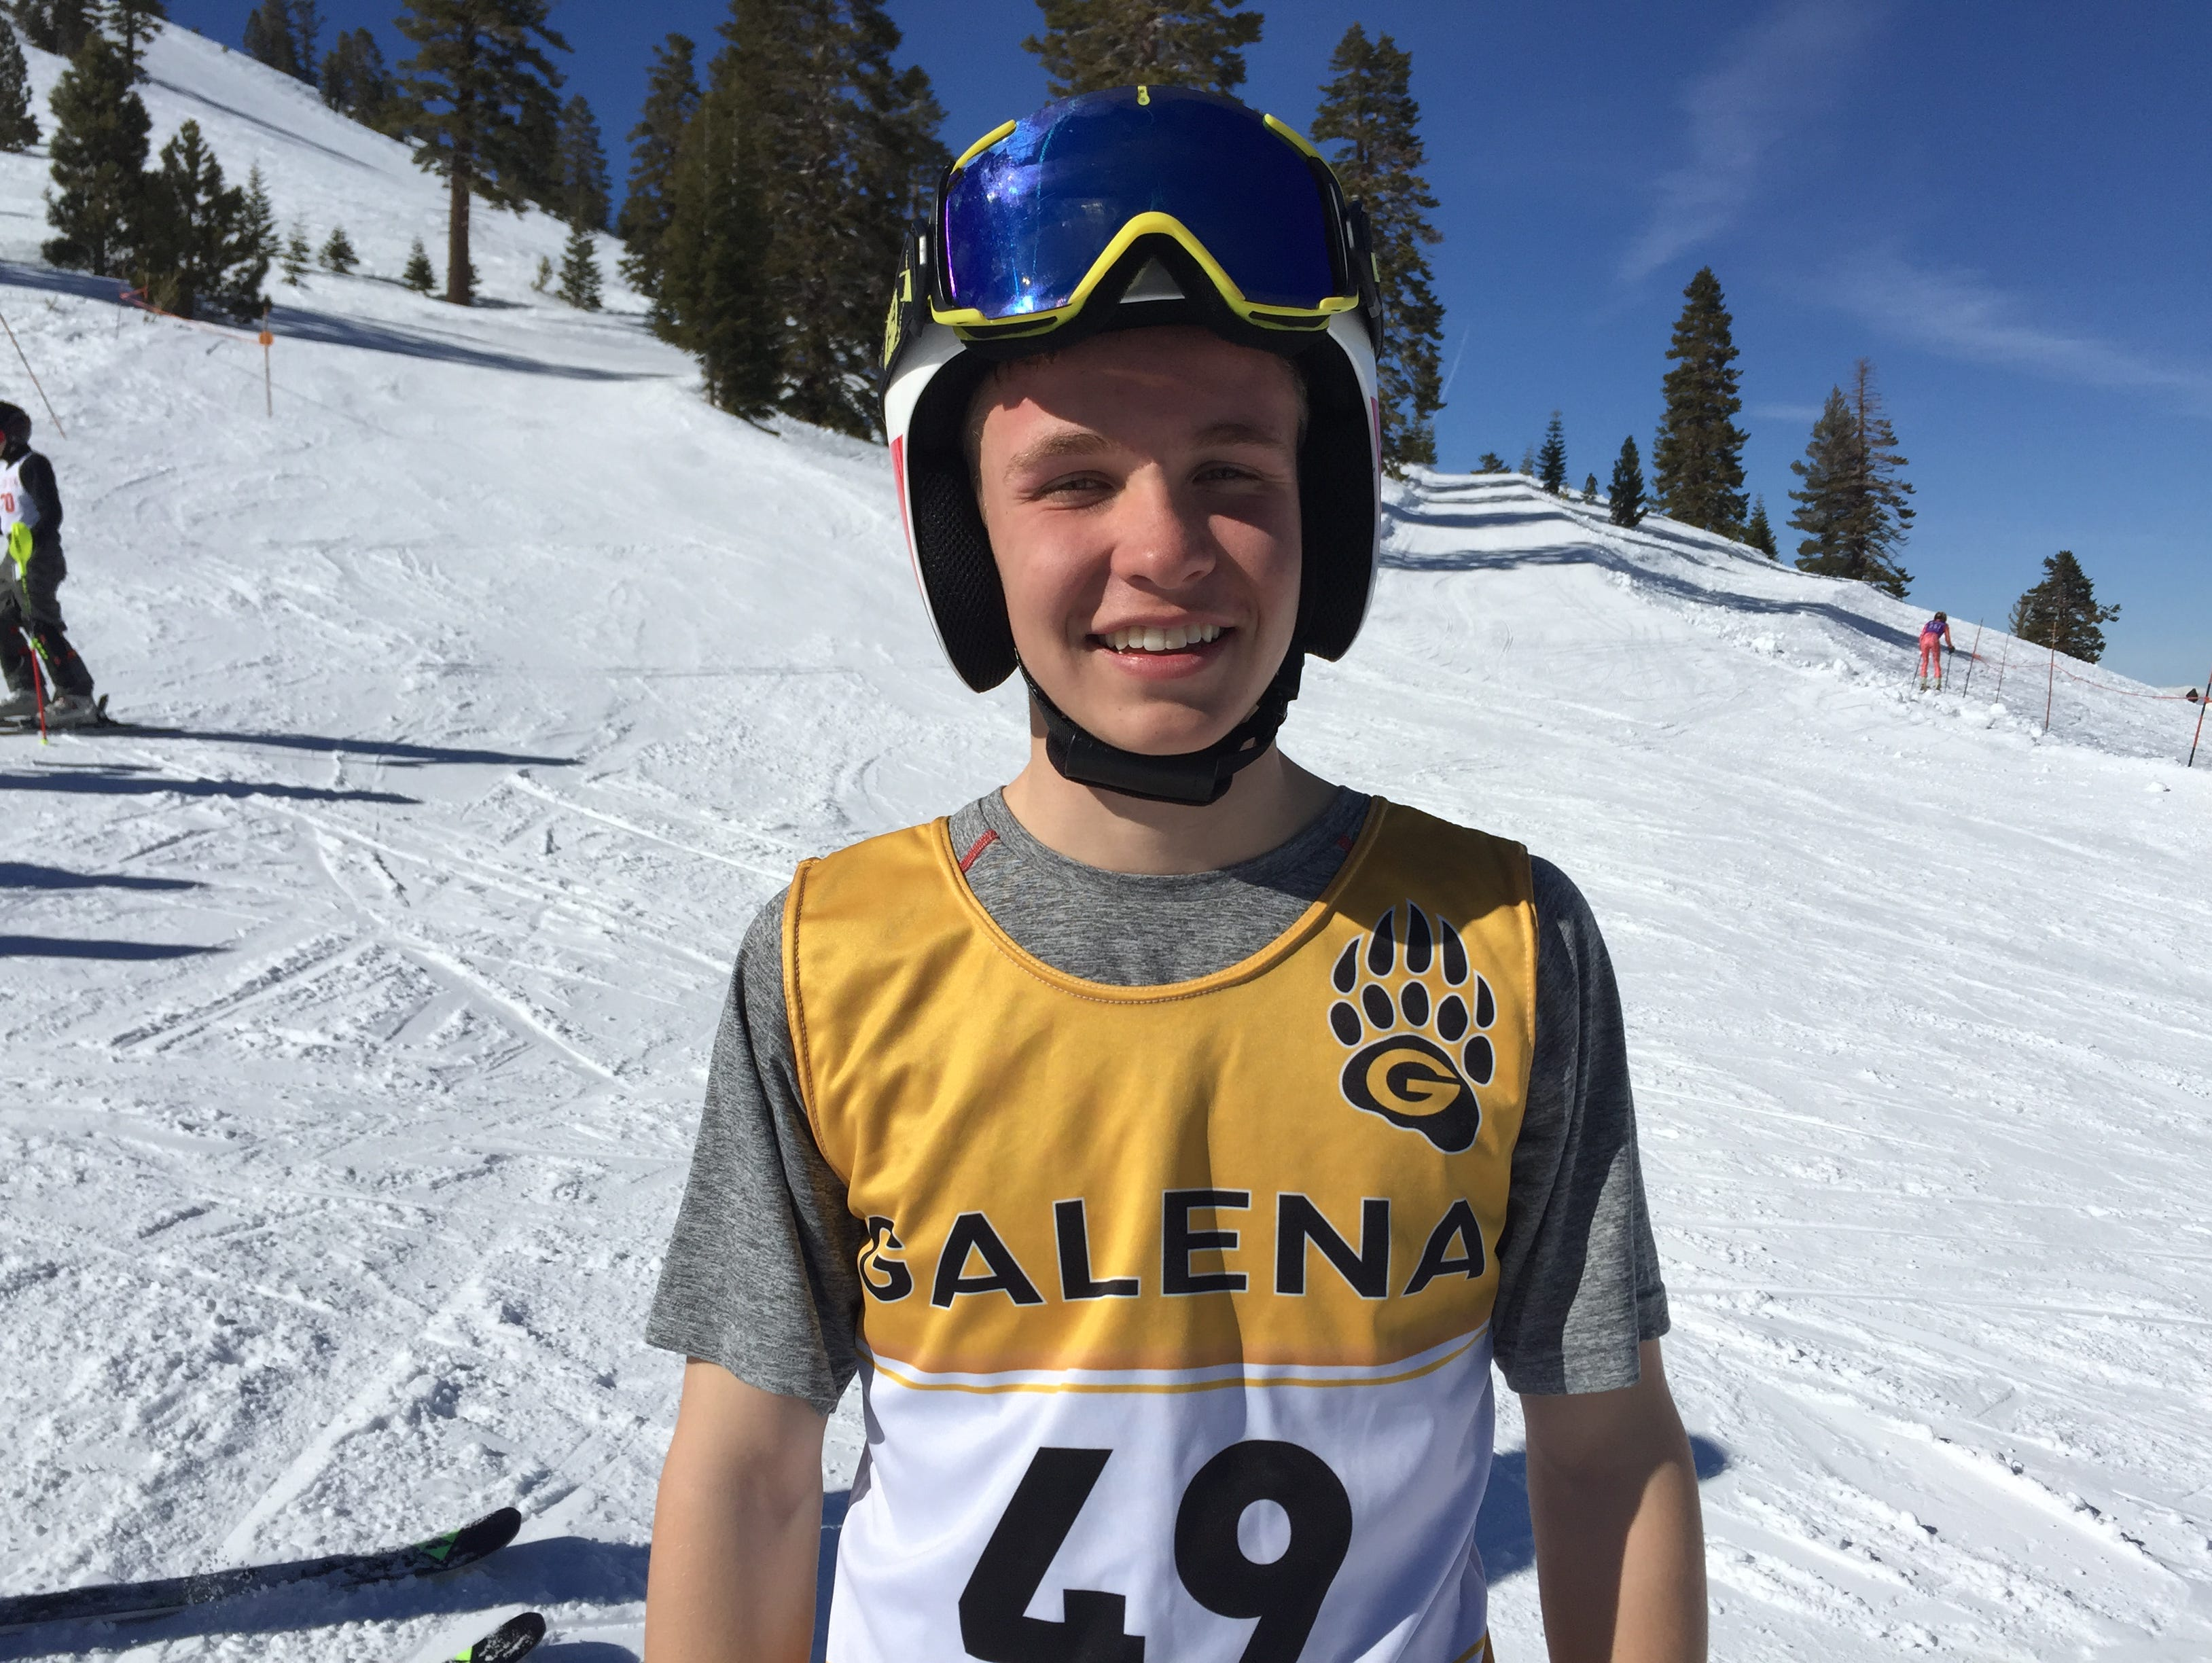 Cole Matteson from Galena won the boys slalom Wednesday in the state ski championships at Mt. Rose.